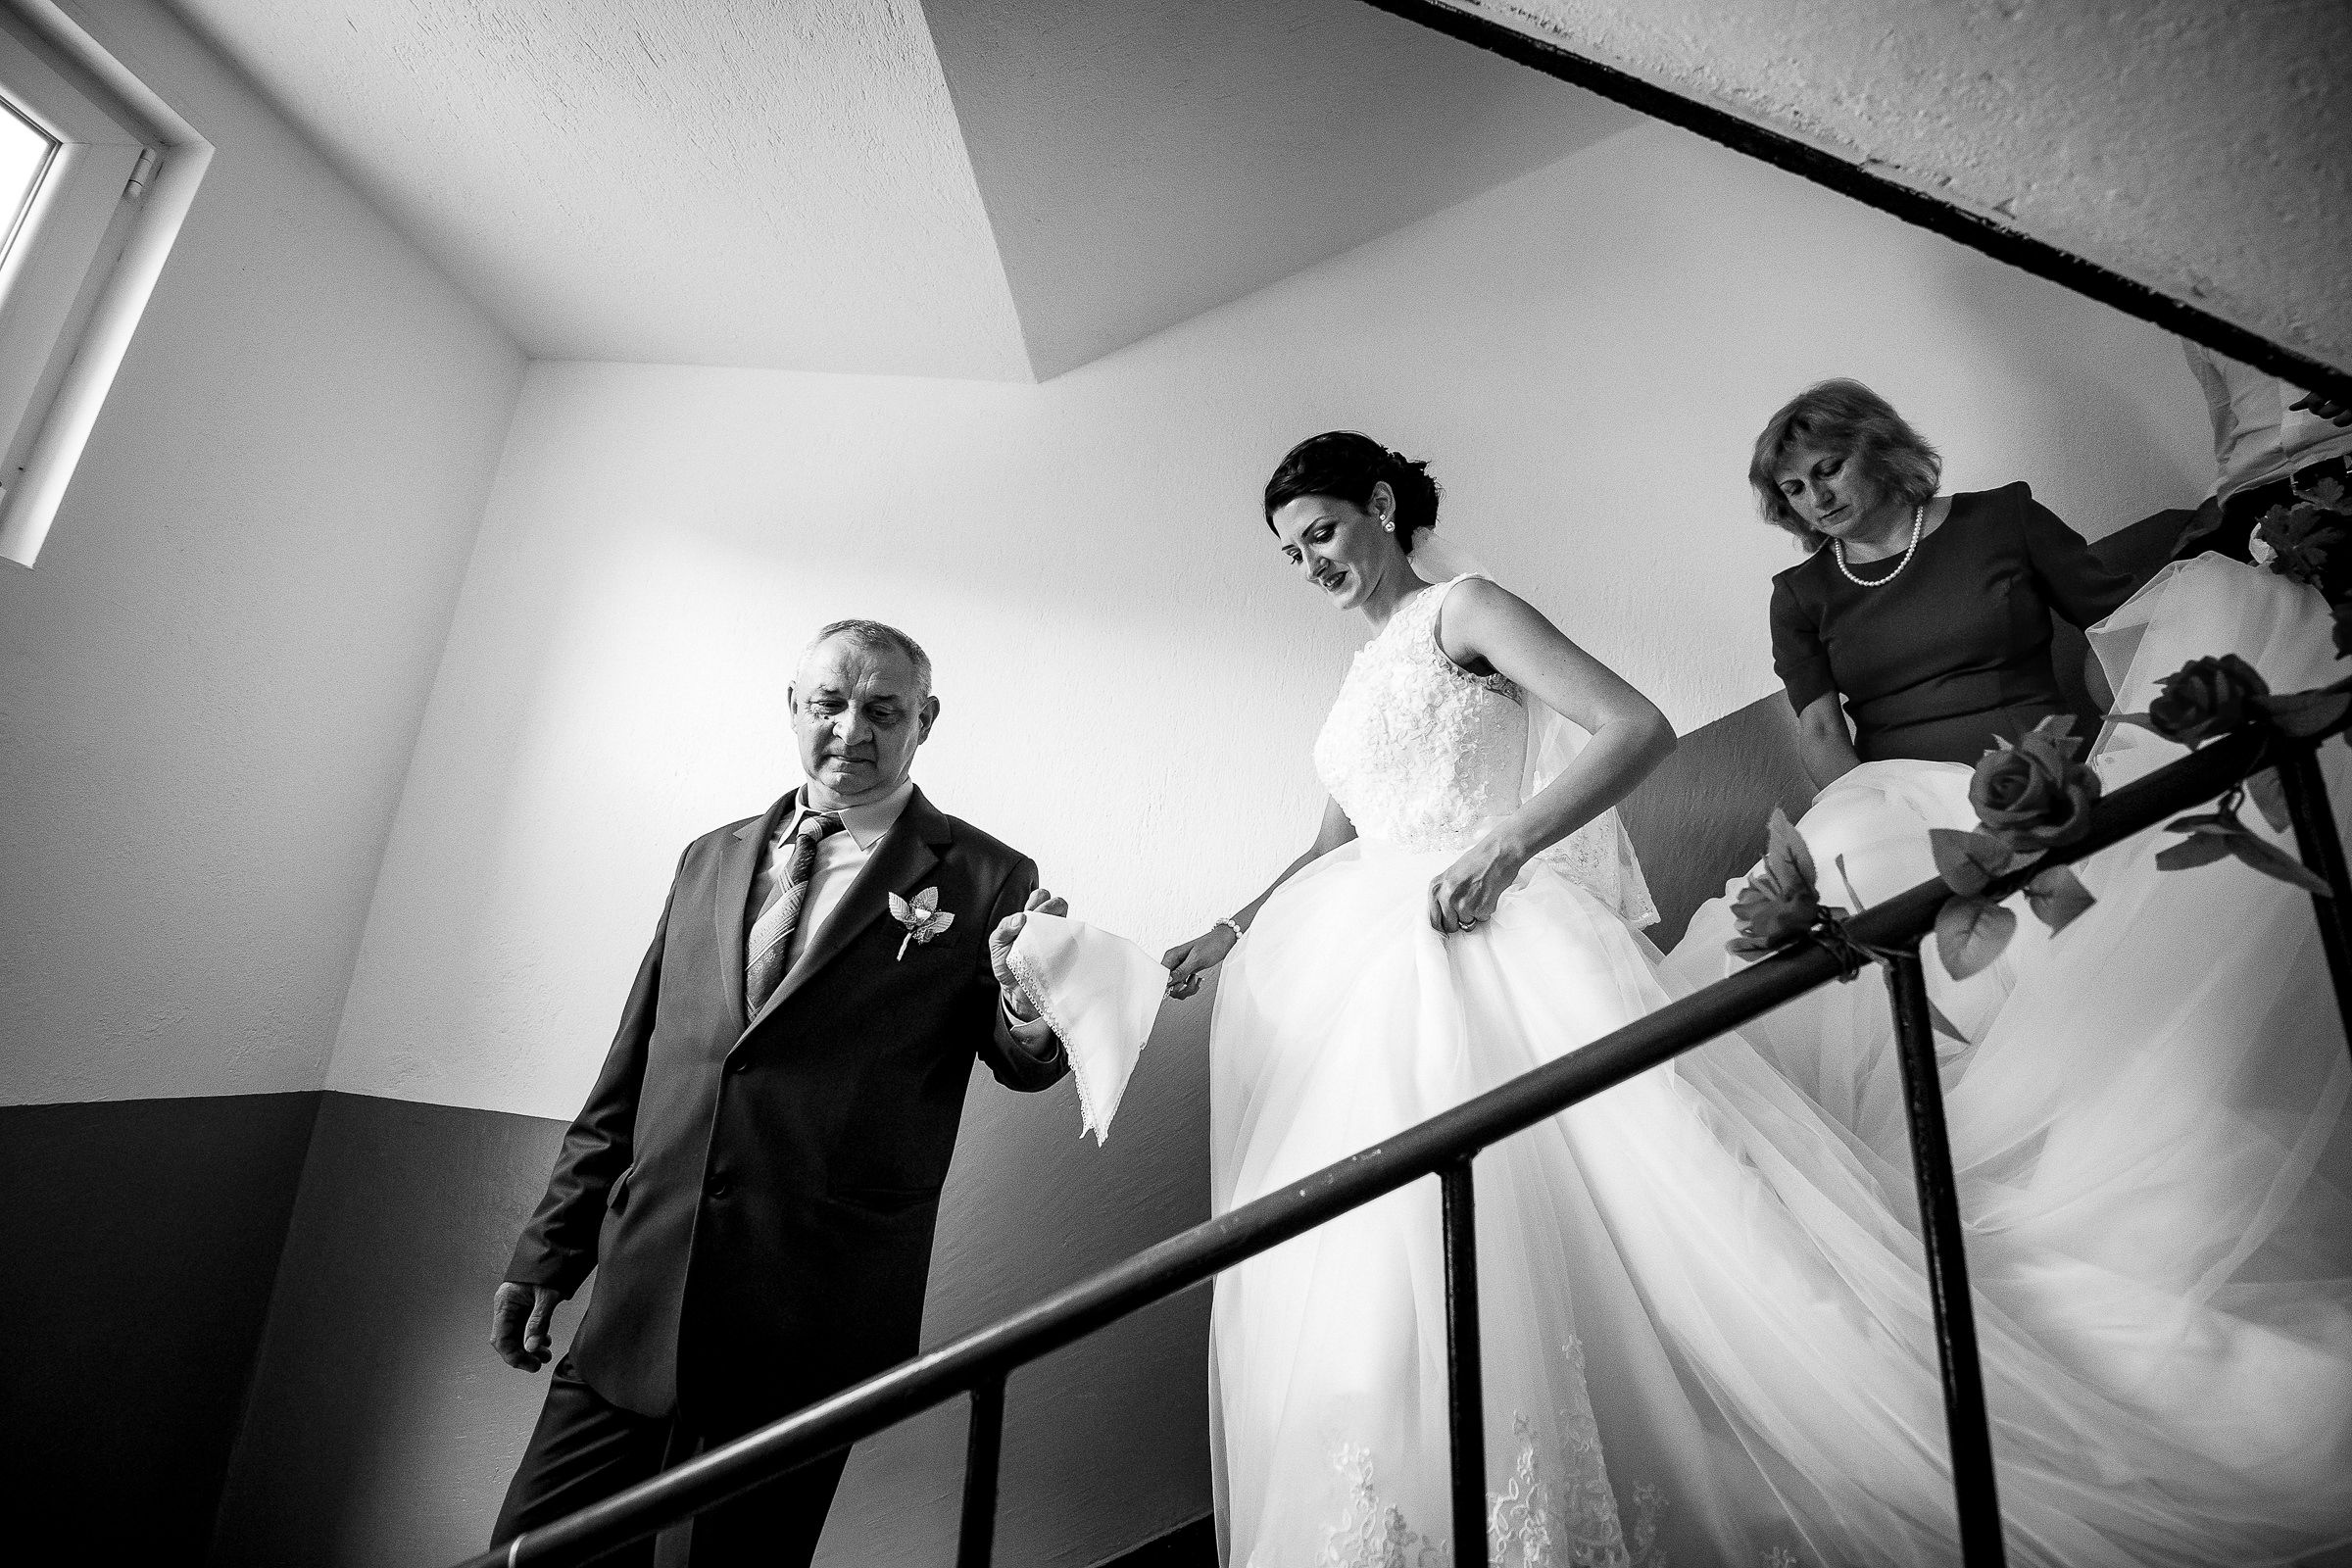 Bride descends stairs with mother and father - photo by Deliysky Studio